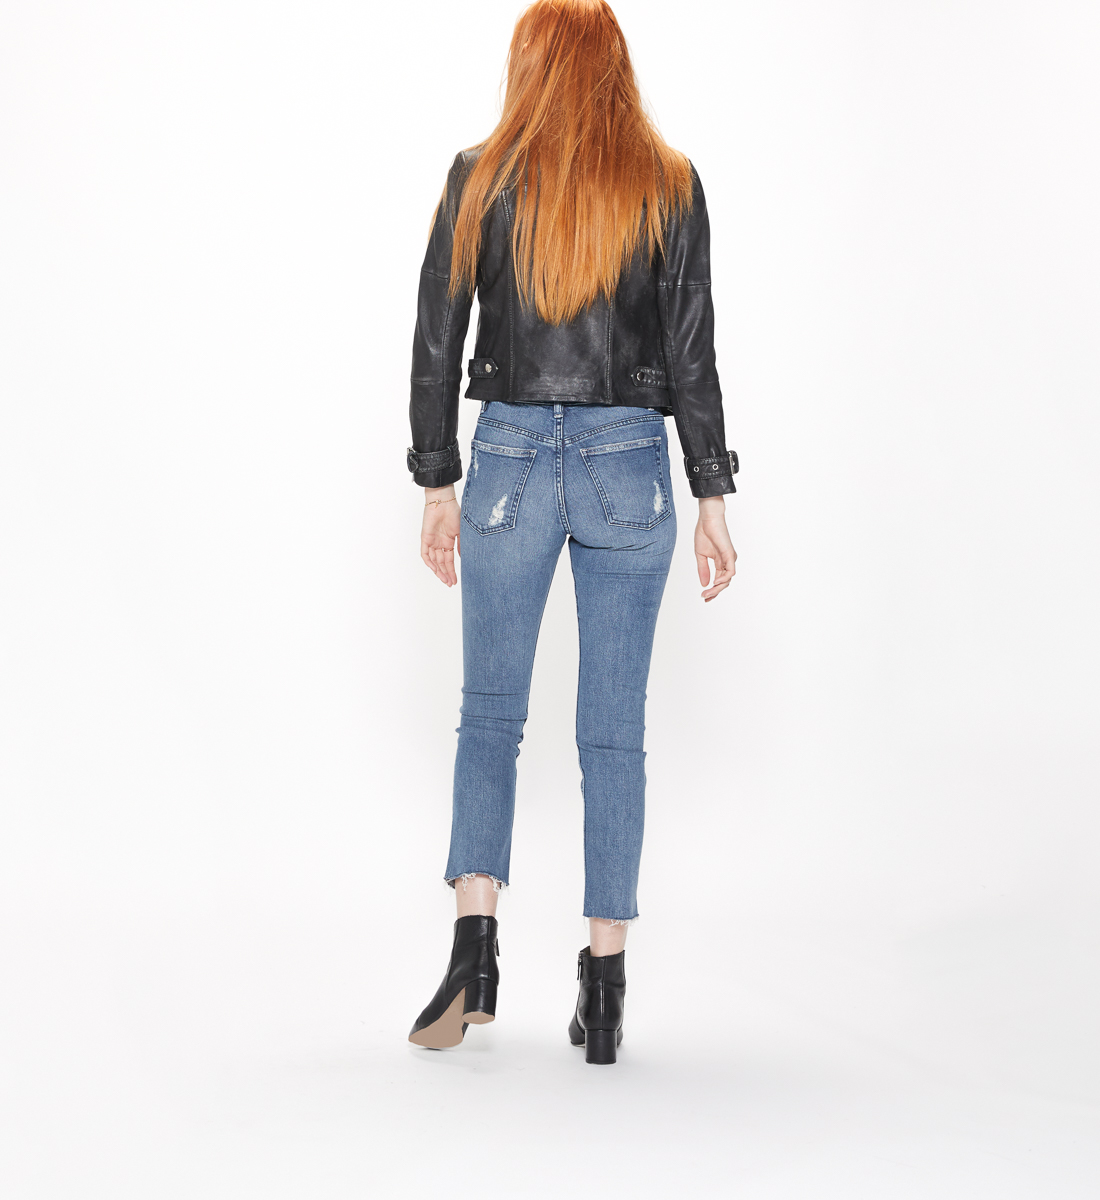 Frisco High Rise Straight Leg Jeans, , hi-res